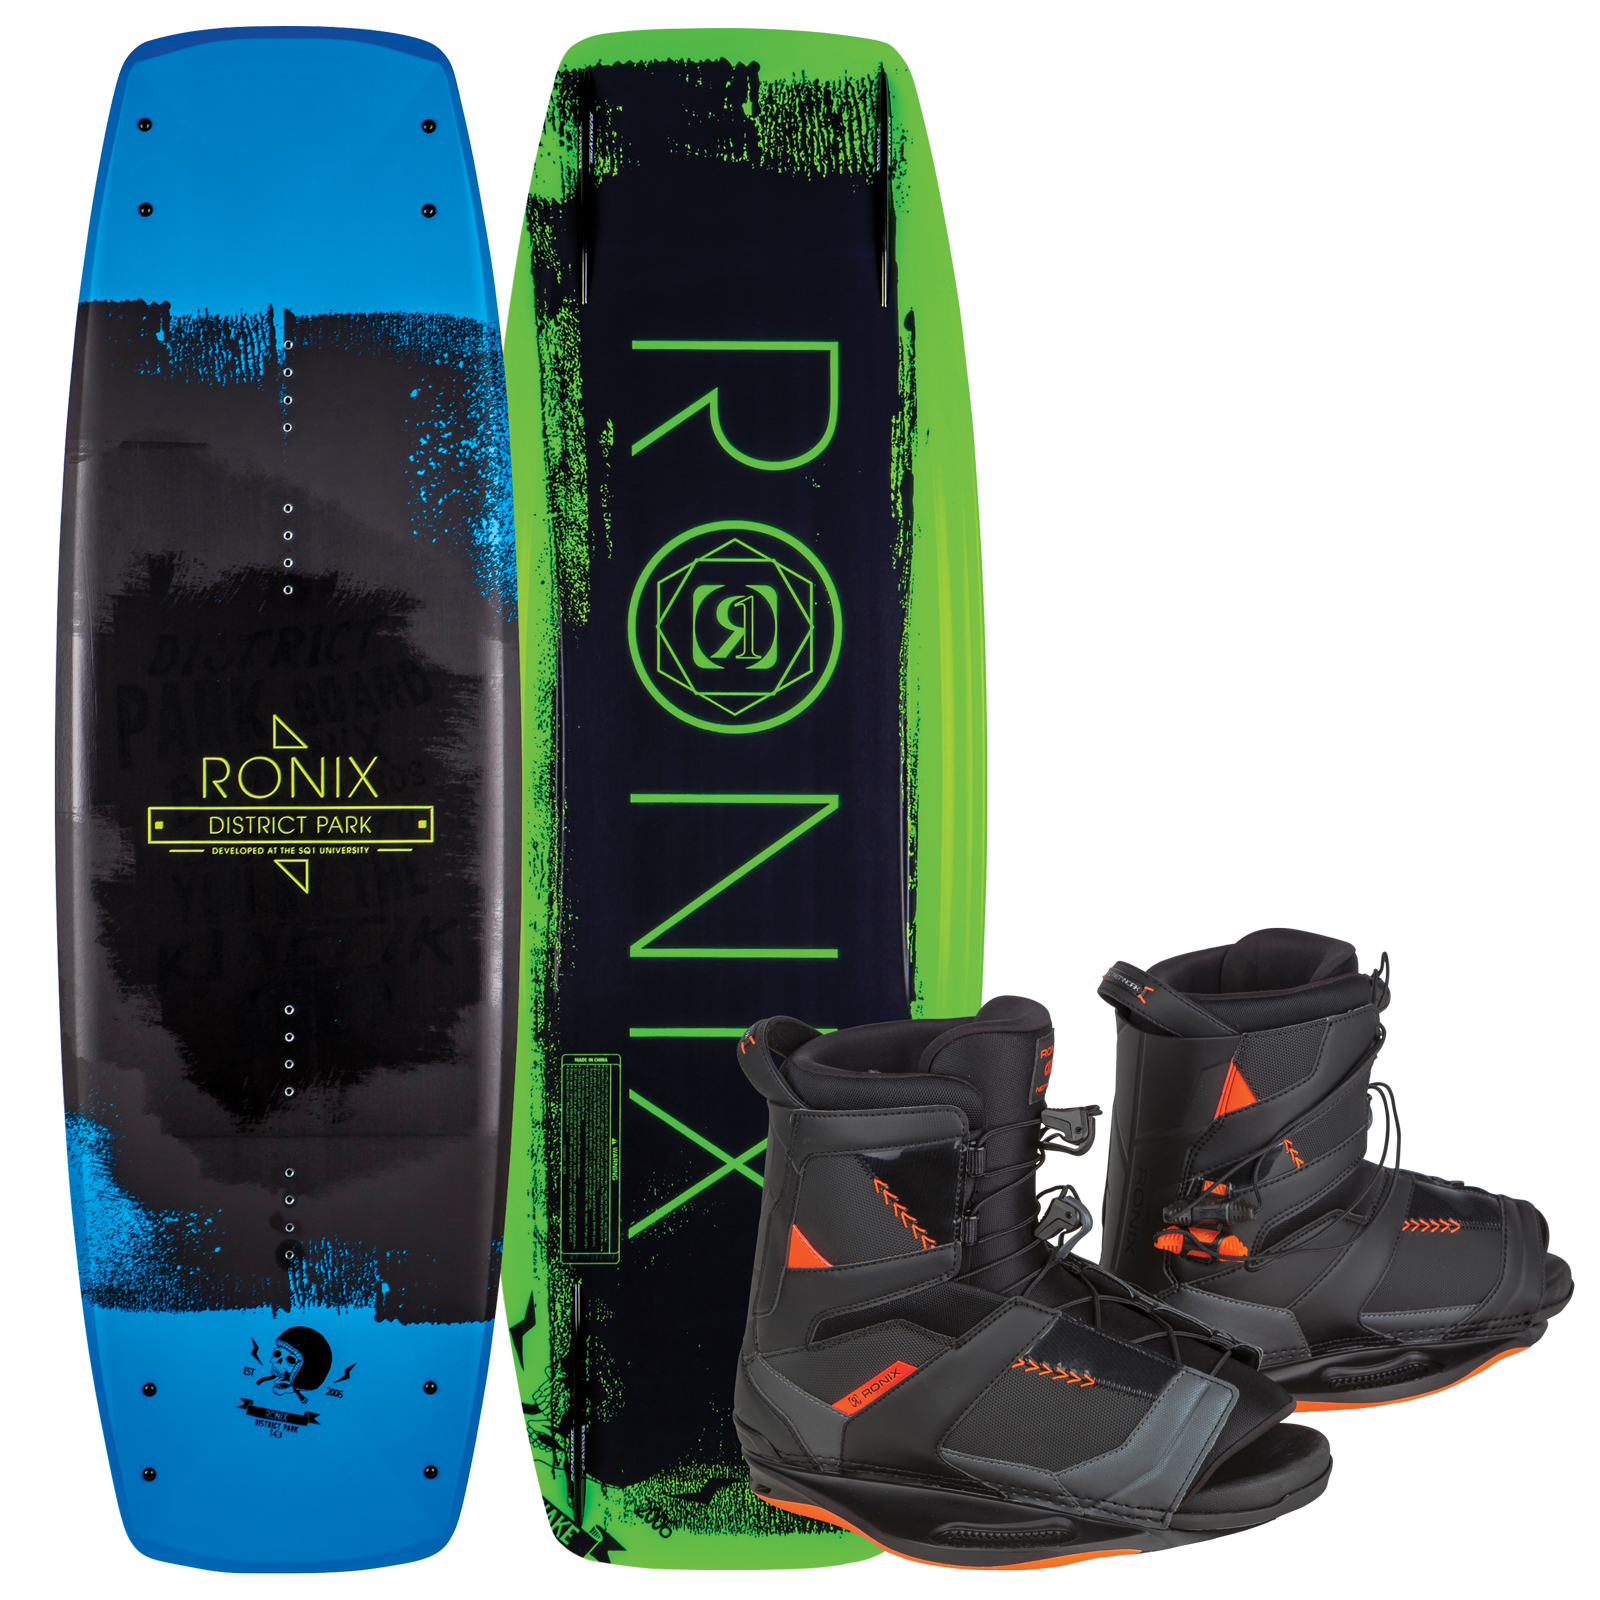 DISTRICT PARK 138 W/ NETWORK PACKAGE RONIX 2017